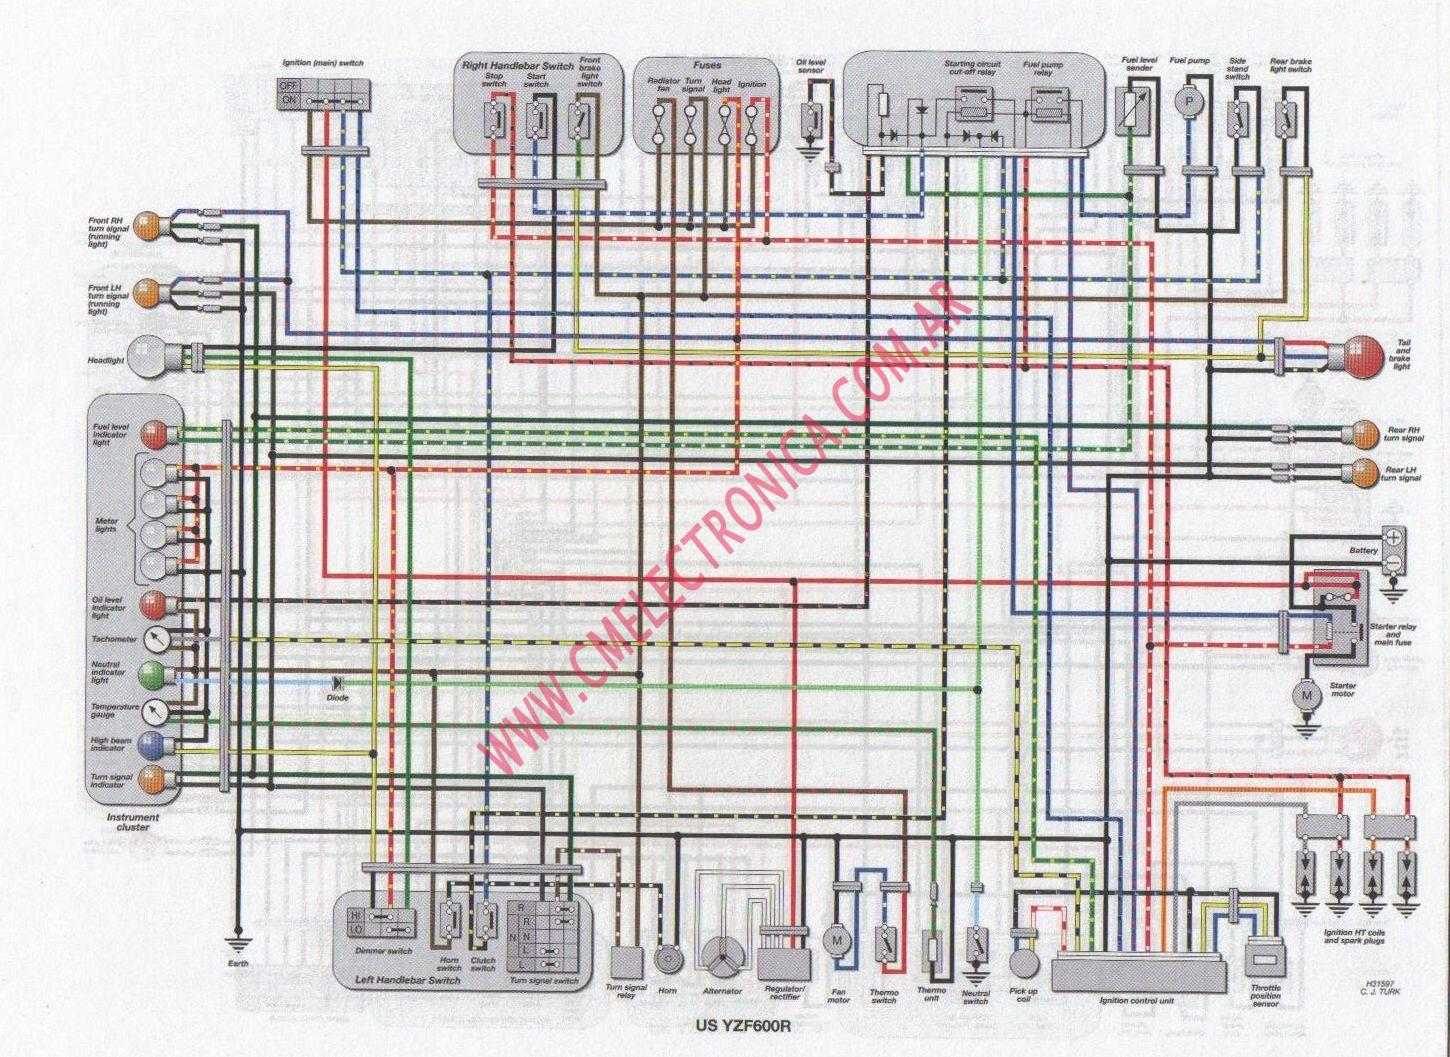 yamaha yzf600r wiring diagram for 2007 gsxr 600 the wiring diagram readingrat net 97 cbr 600 f3 wiring diagram at crackthecode.co